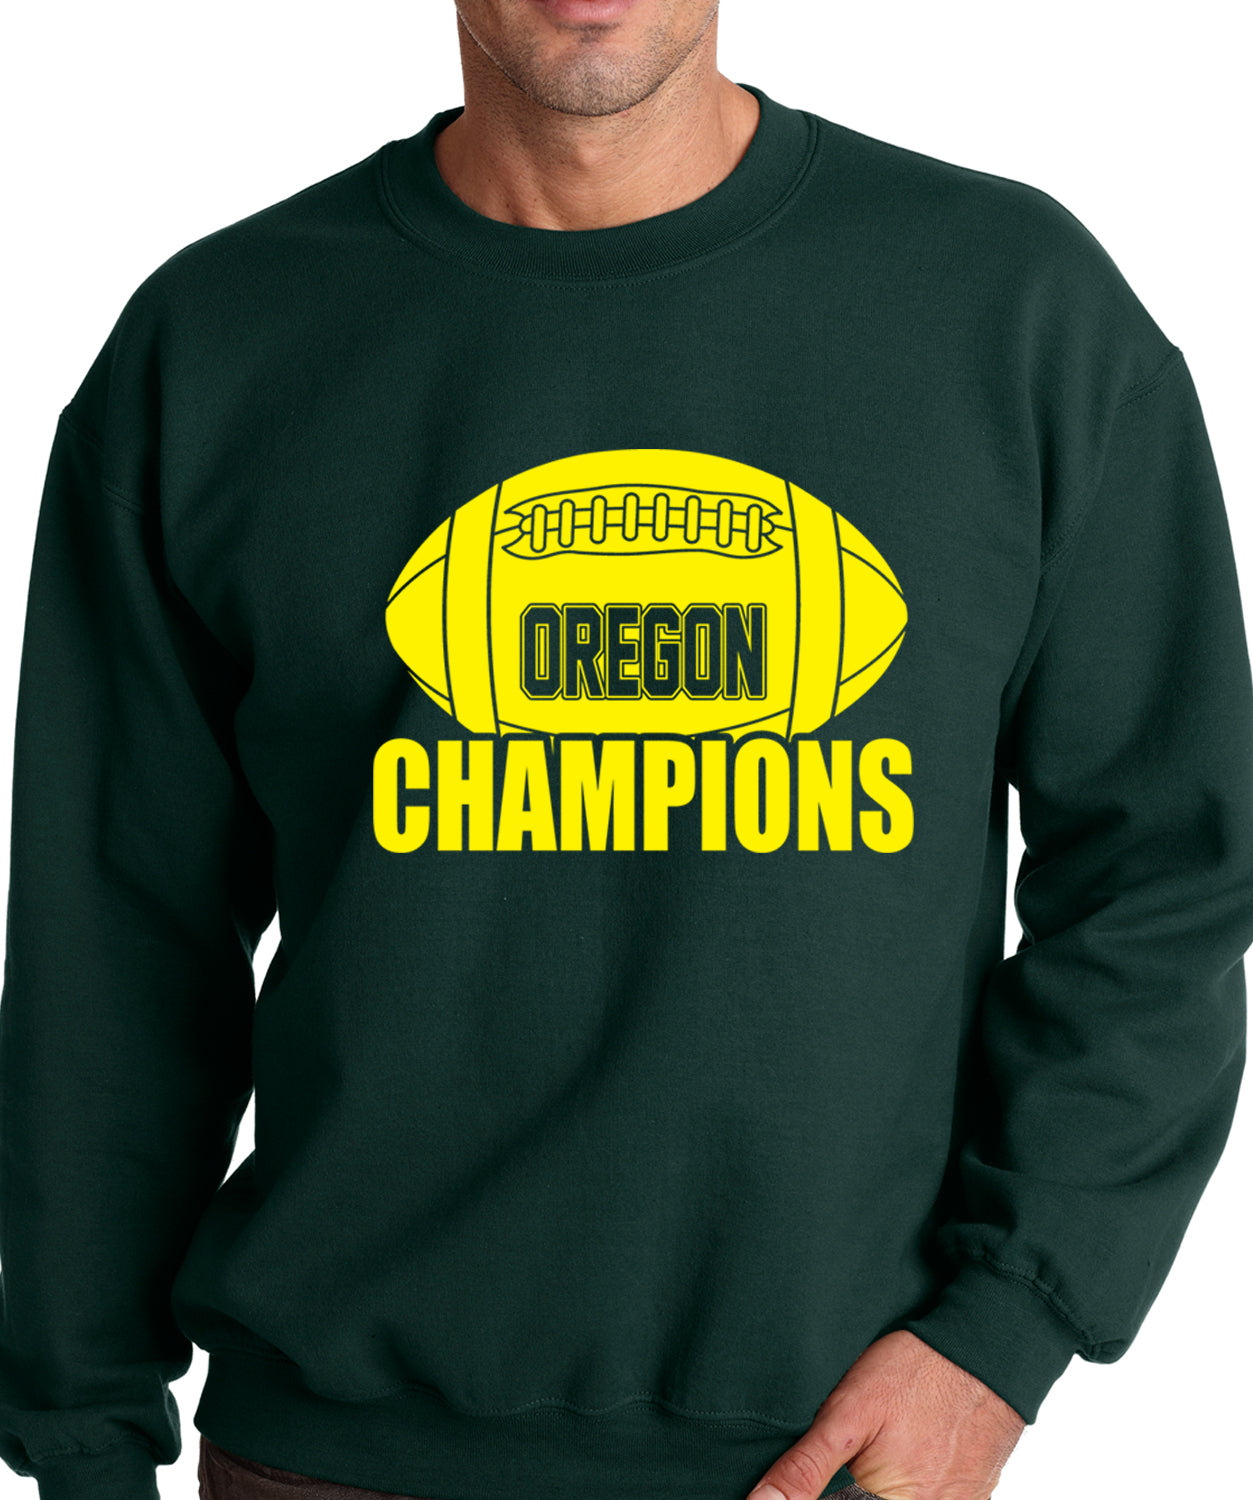 Oregon Football Champions Crewneck Sweatshirt